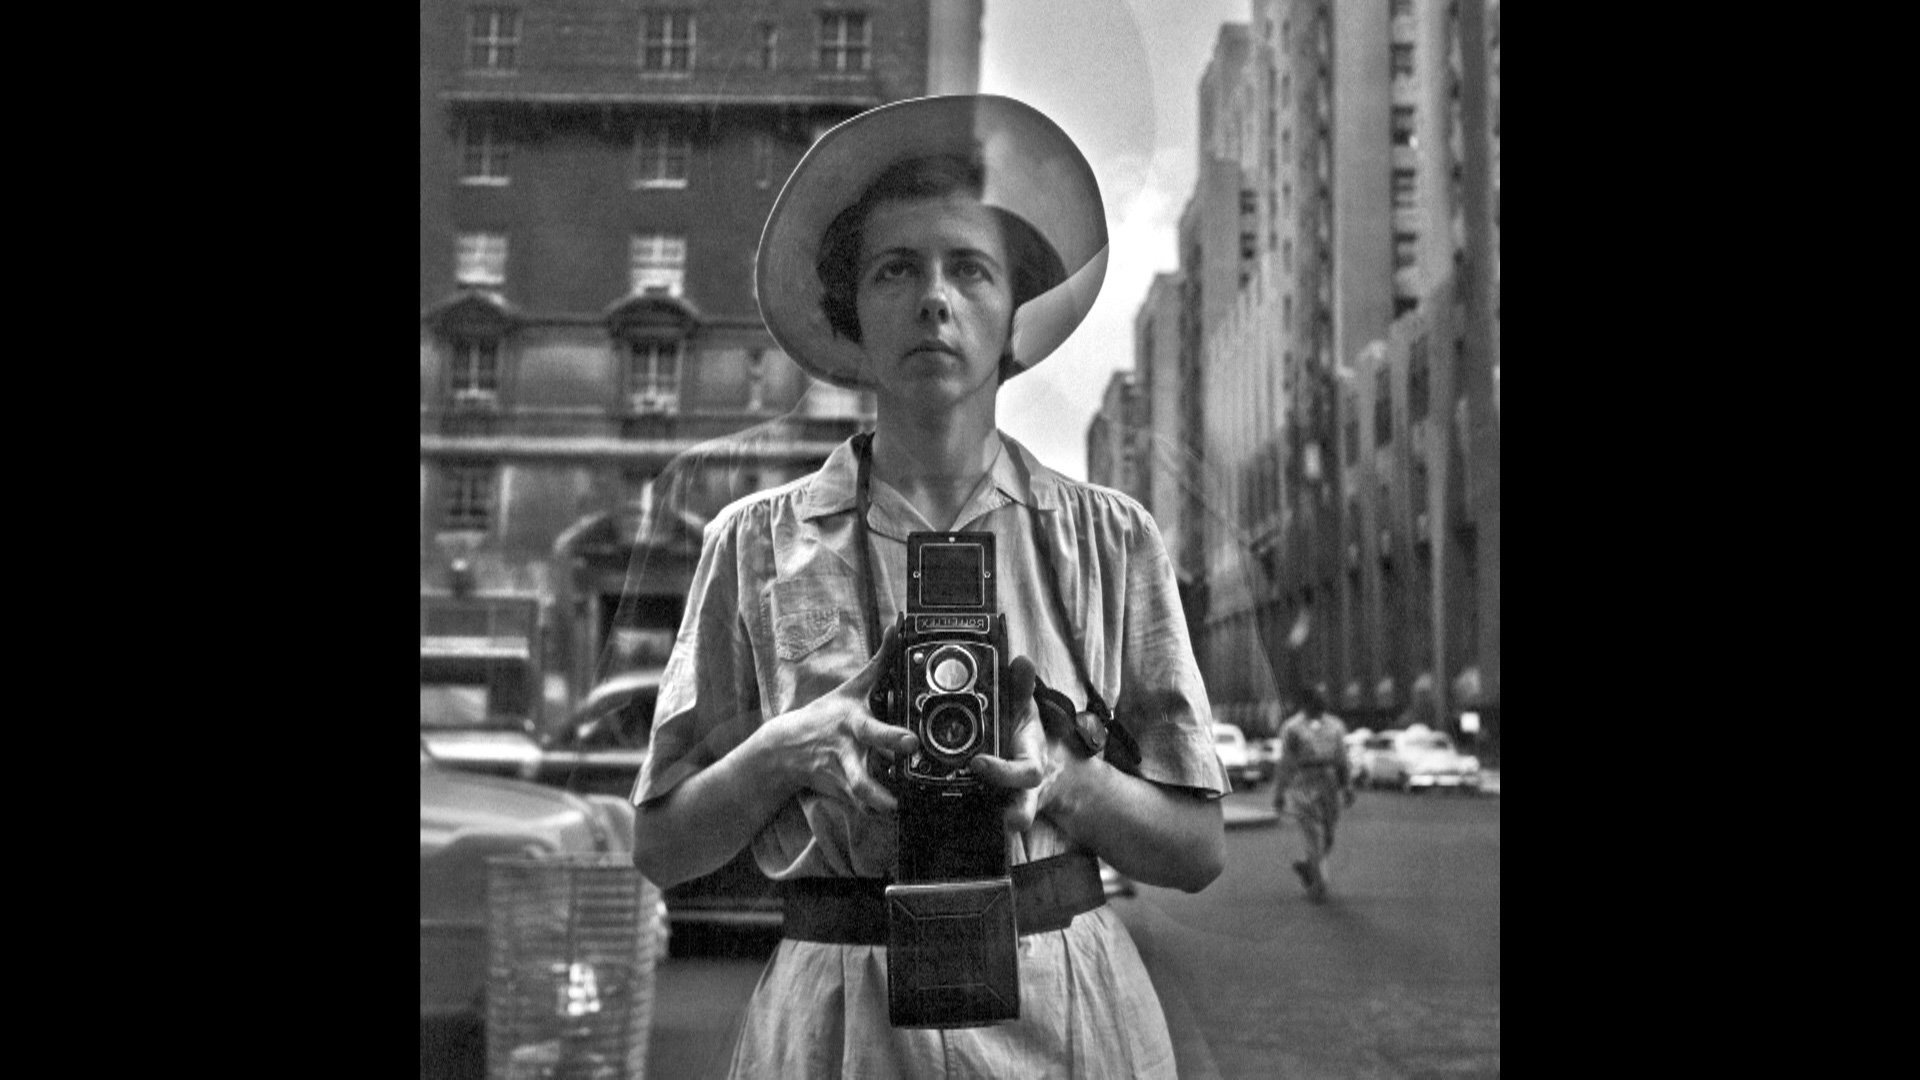 Photographer Vivian Maier